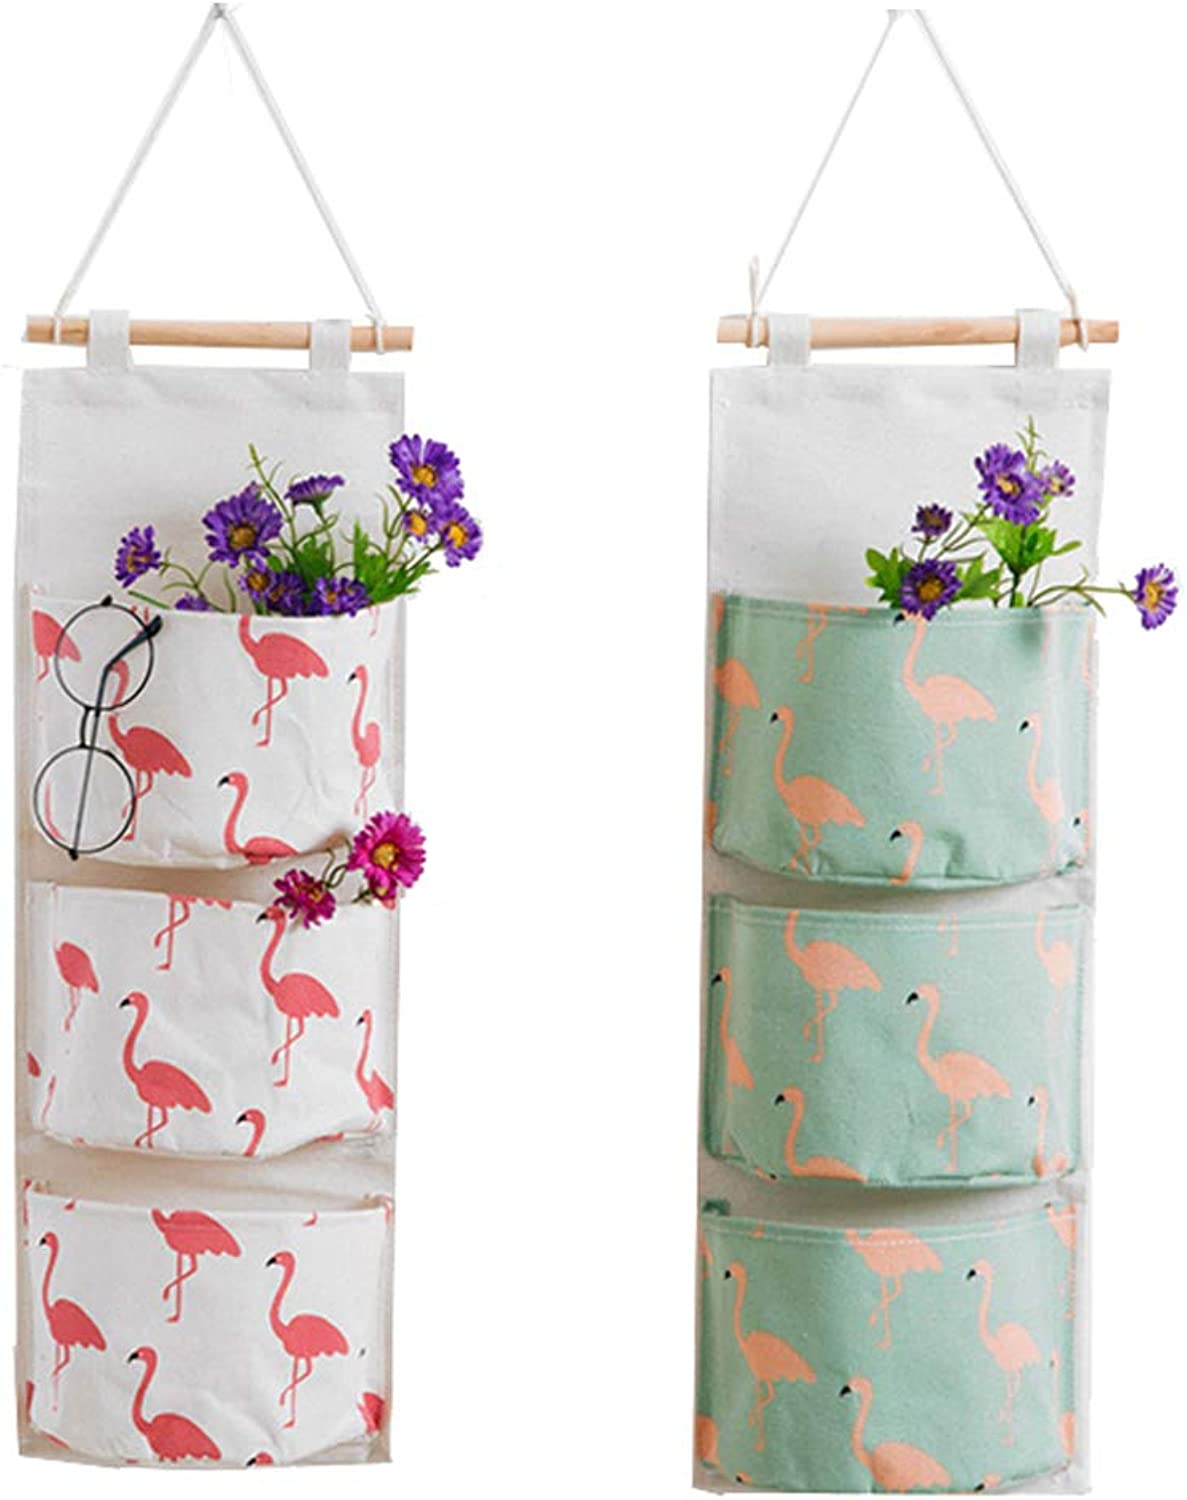 2 Pack Wall Hanging Organizer Over The Door Closet Storage Bags with 3 Pockets for Bedroom & Bathroom